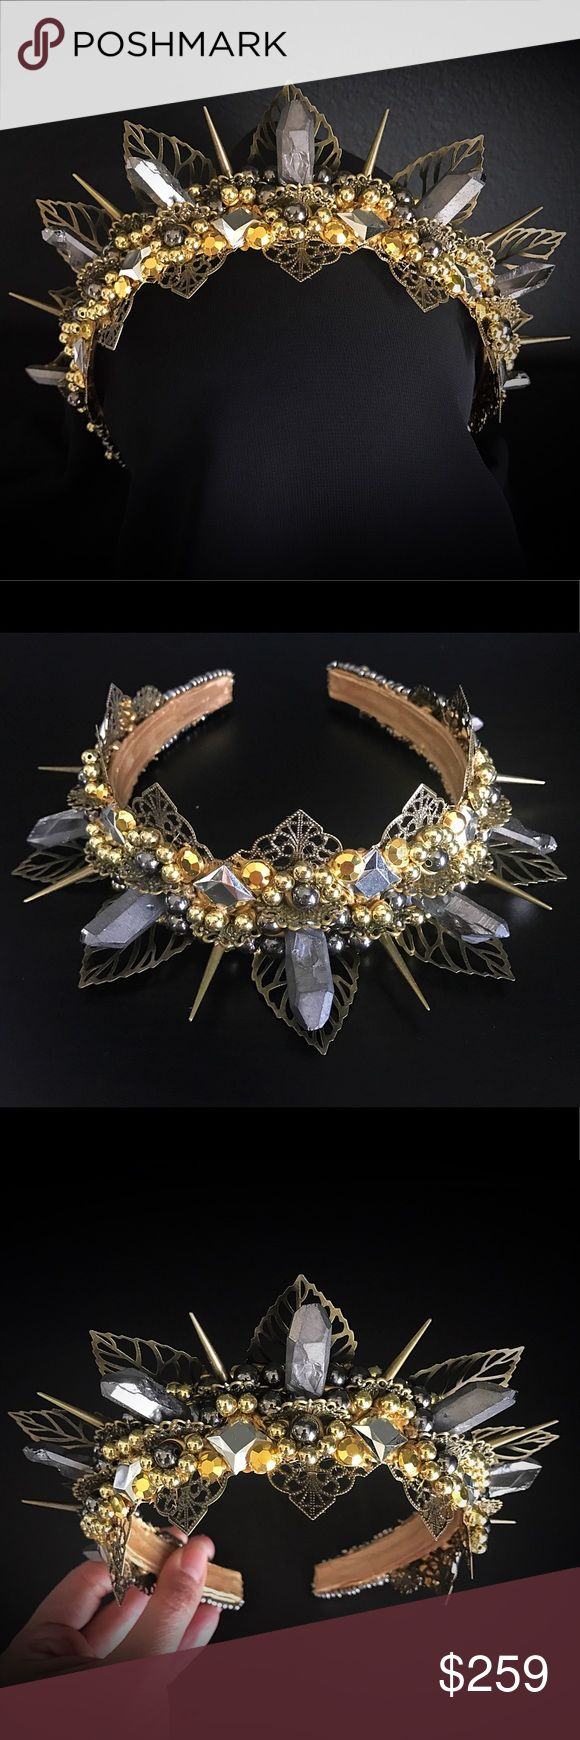 Gold & silver festival crown halo, spikes crystals Brand new, handmade, & one of a kind! Perfect for Burning Man, cosplay & festivals! Whisper Party Accessories Hair Accessories